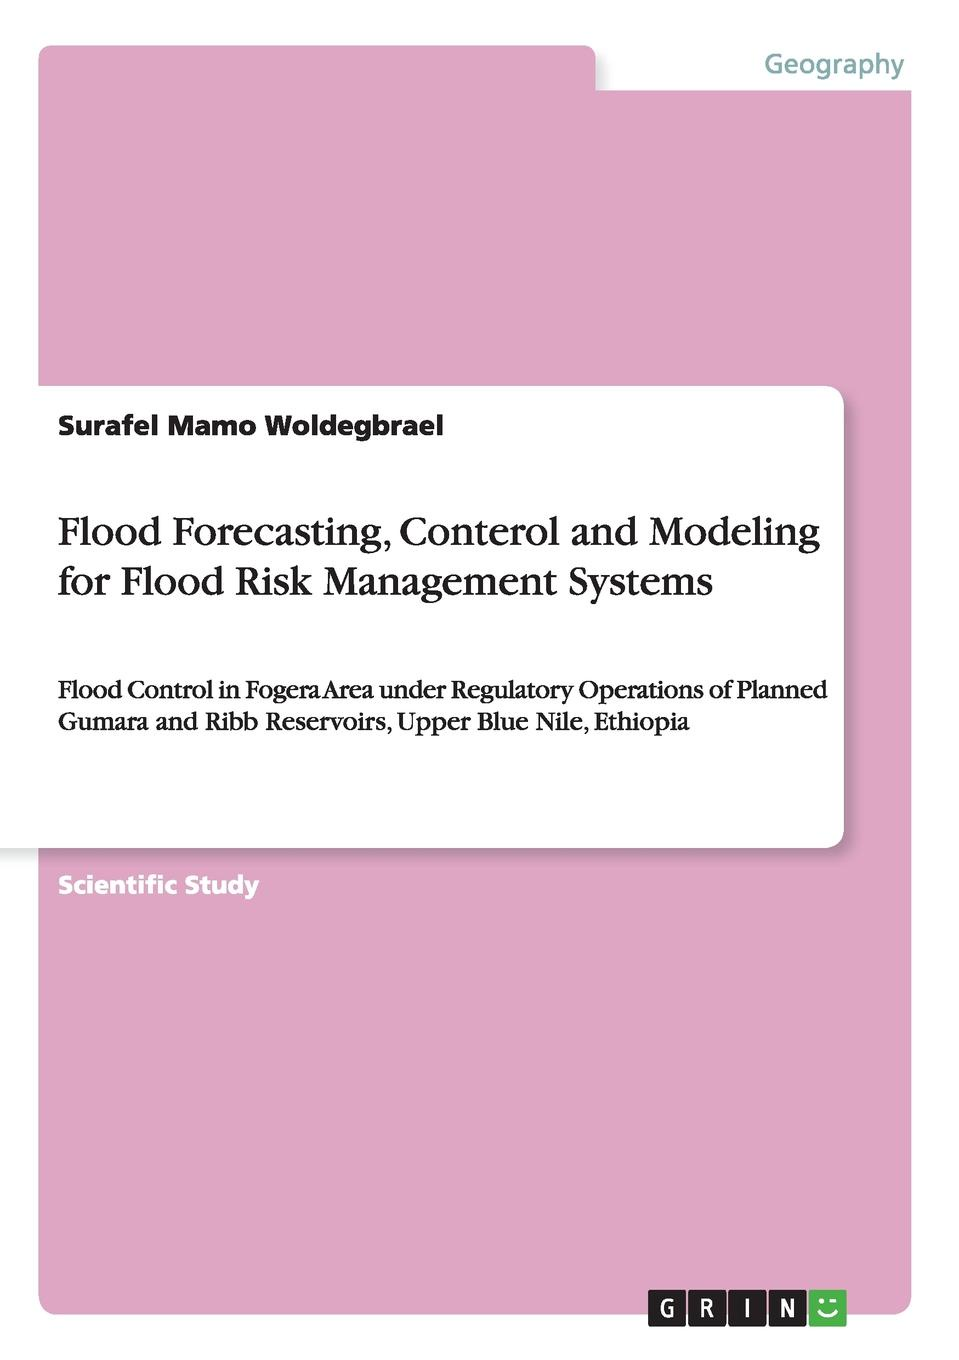 Surafel Mamo Woldegbrael Flood Forecasting, Conterol and Modeling for Flood Risk Management Systems surafel mamo woldegbrael flood forecasting conterol and modeling for flood risk management systems